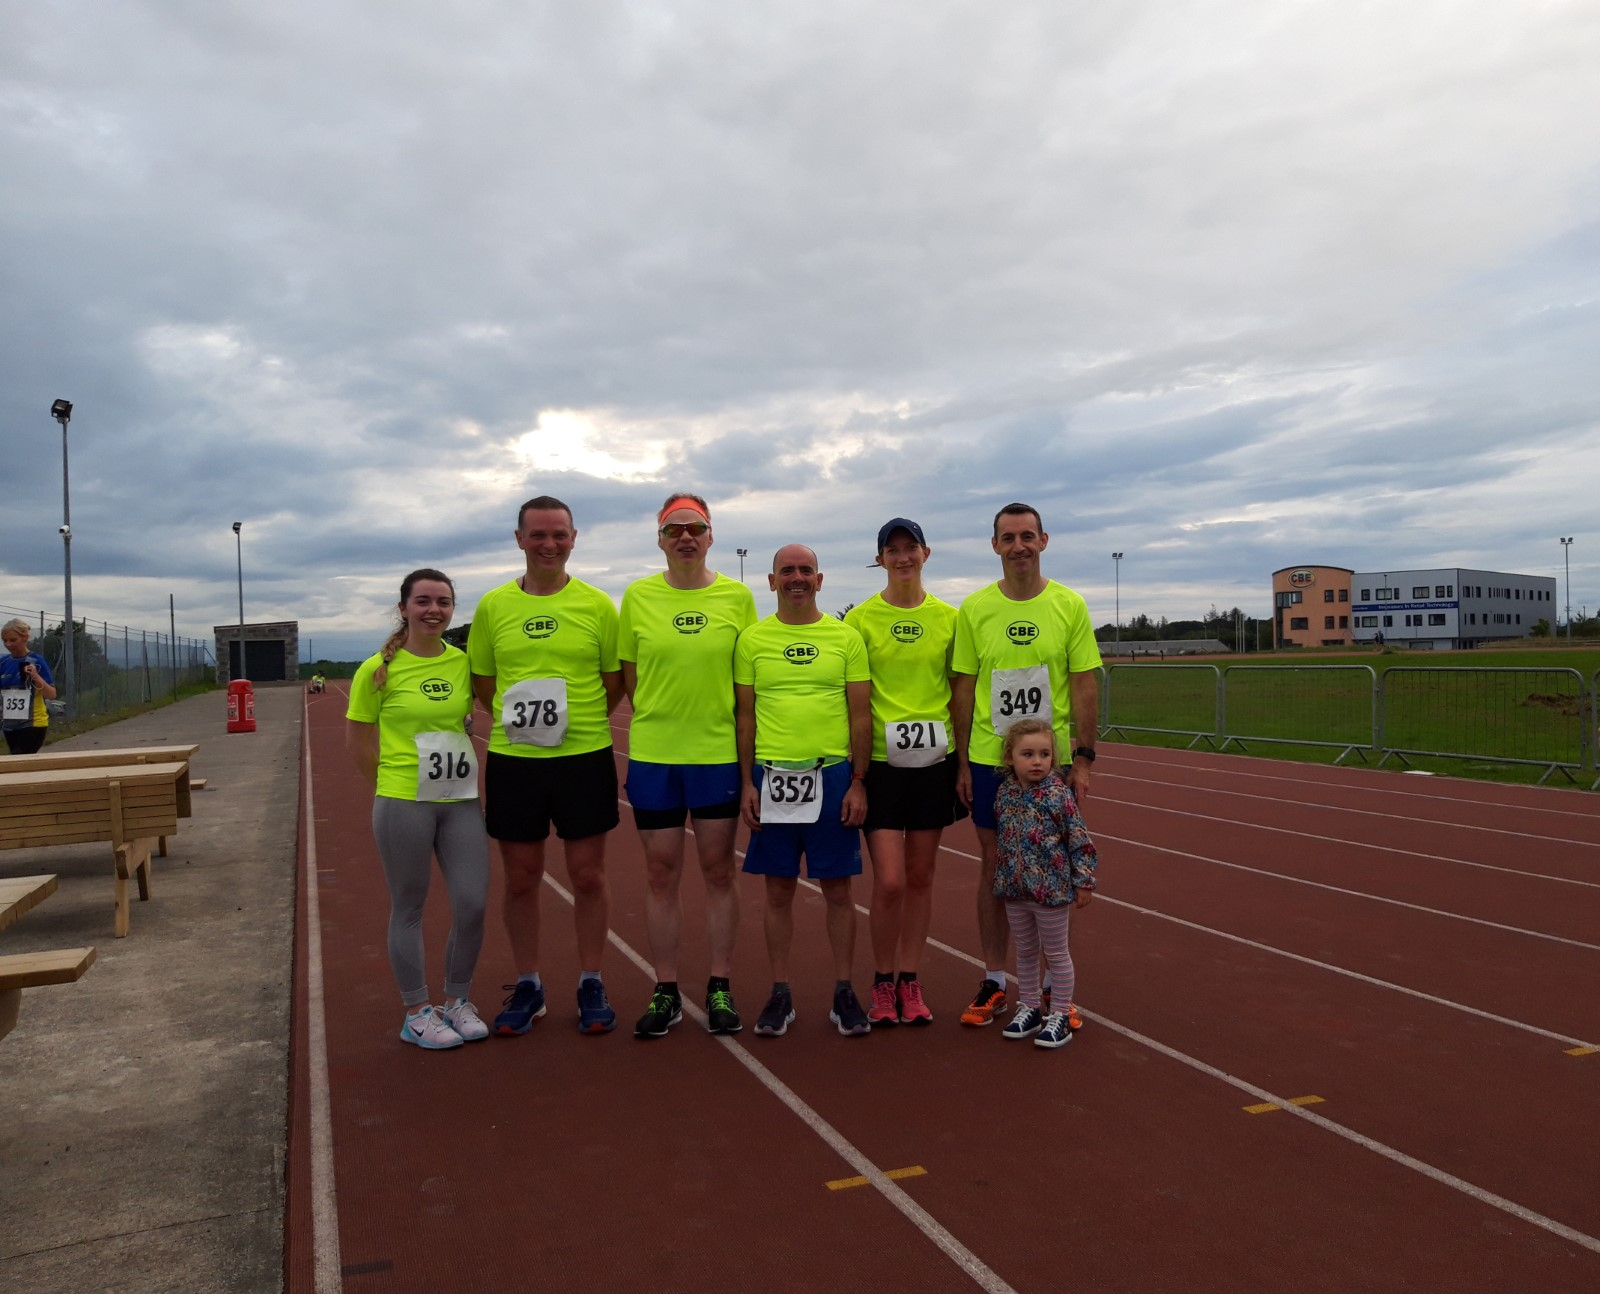 CBE colleagues take part in annual Tom Waldron 5k run for Protect the Children